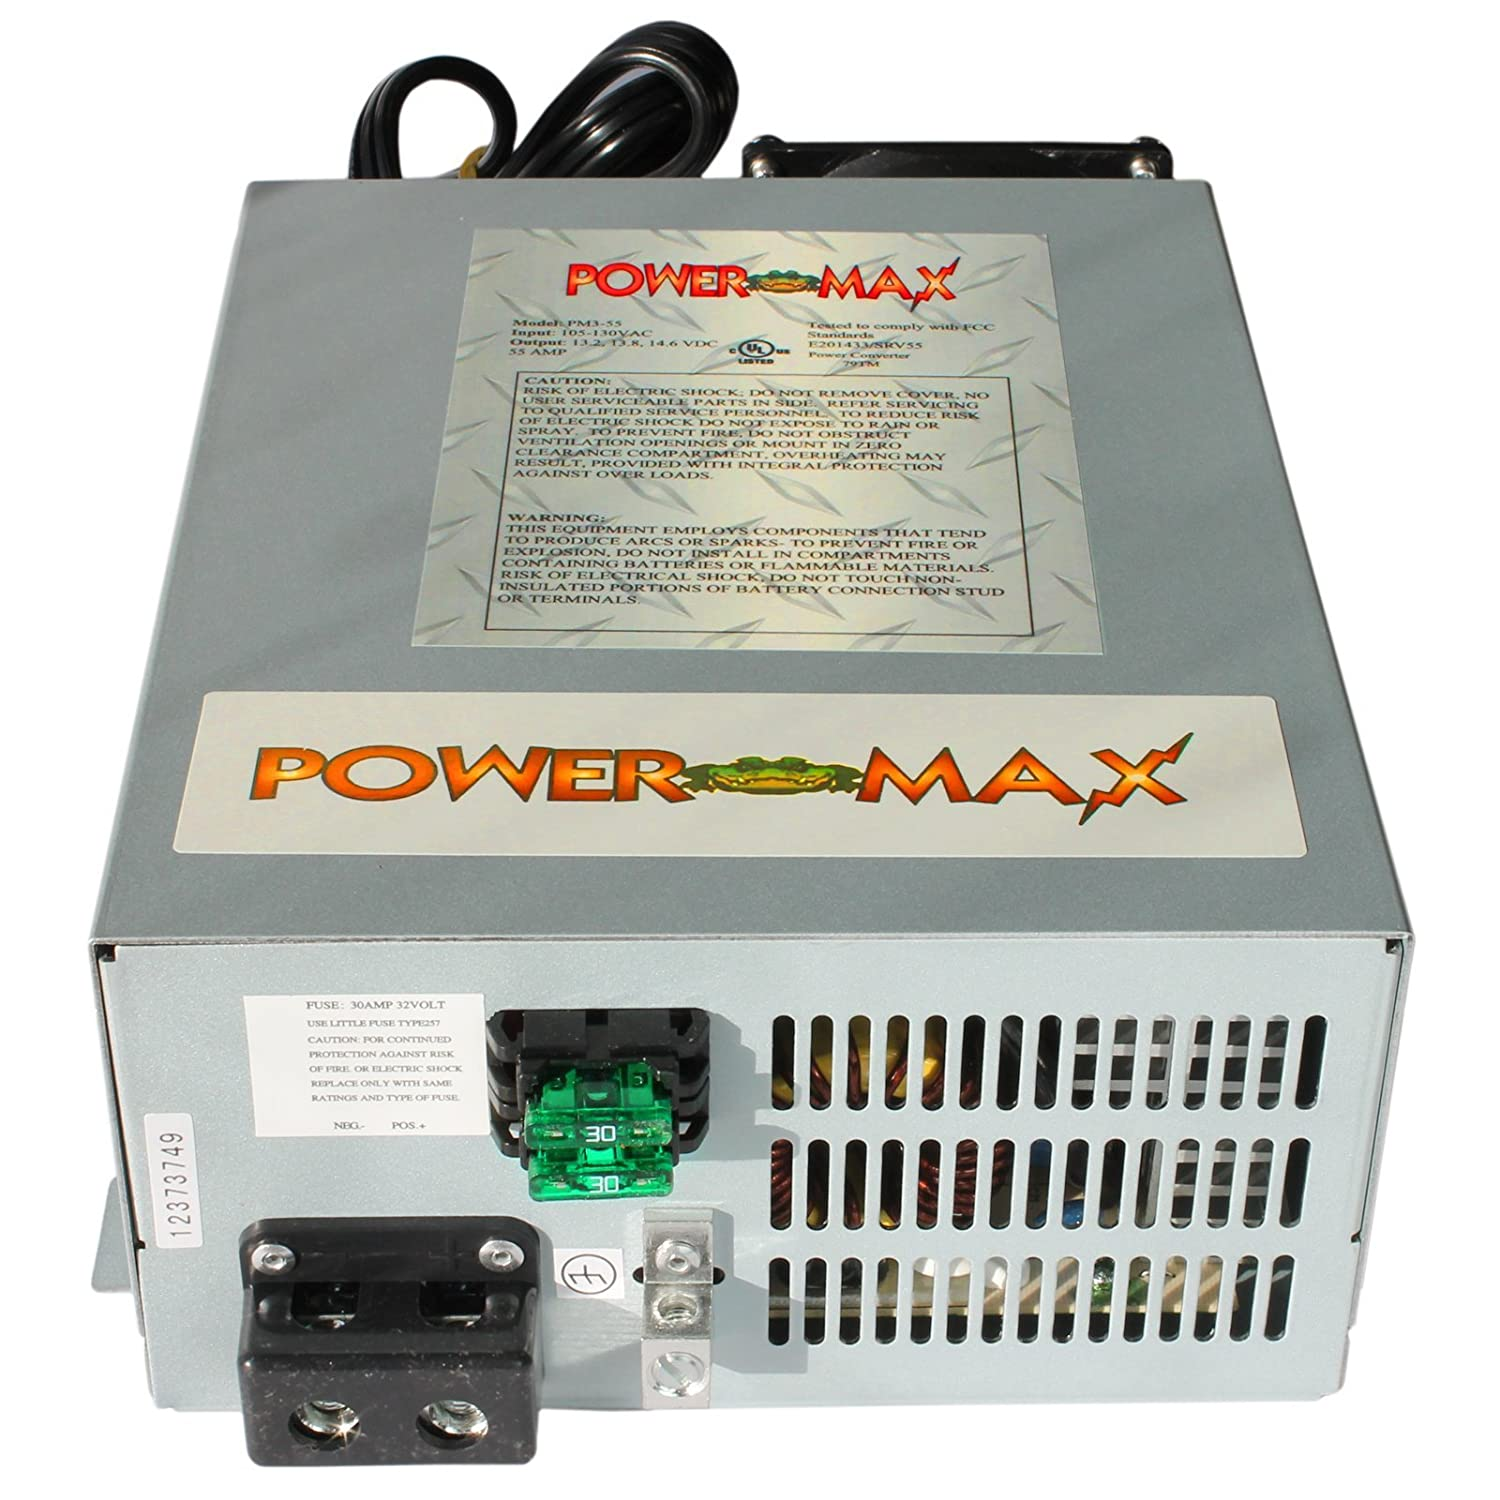 Powermax 110 Volt Ac To 12 Dc Power Supply Magnetek Converter 3200 Wiring Diagram Charger For Rv Pm3 45 Amp Electronics